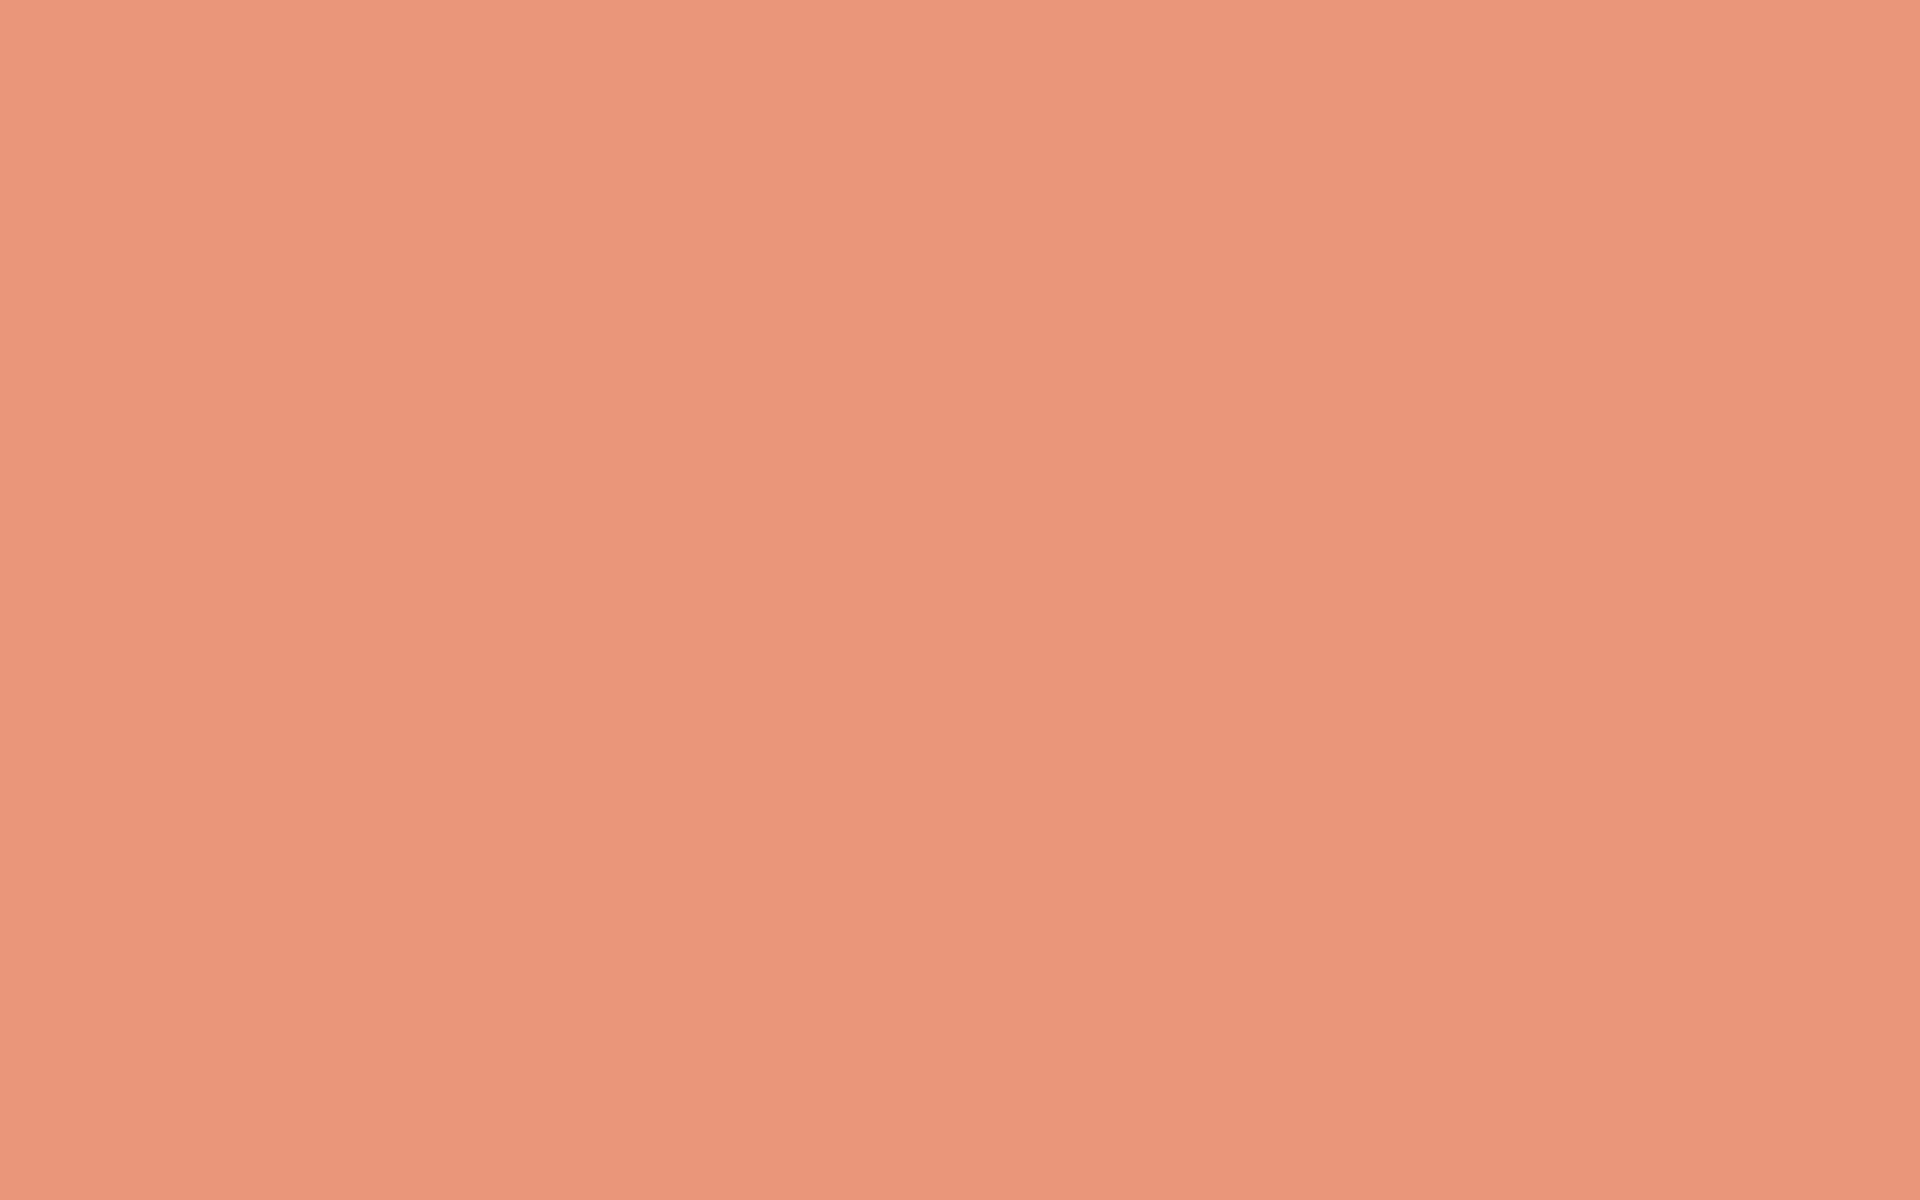 1920x1200 Dark Salmon Solid Color Background